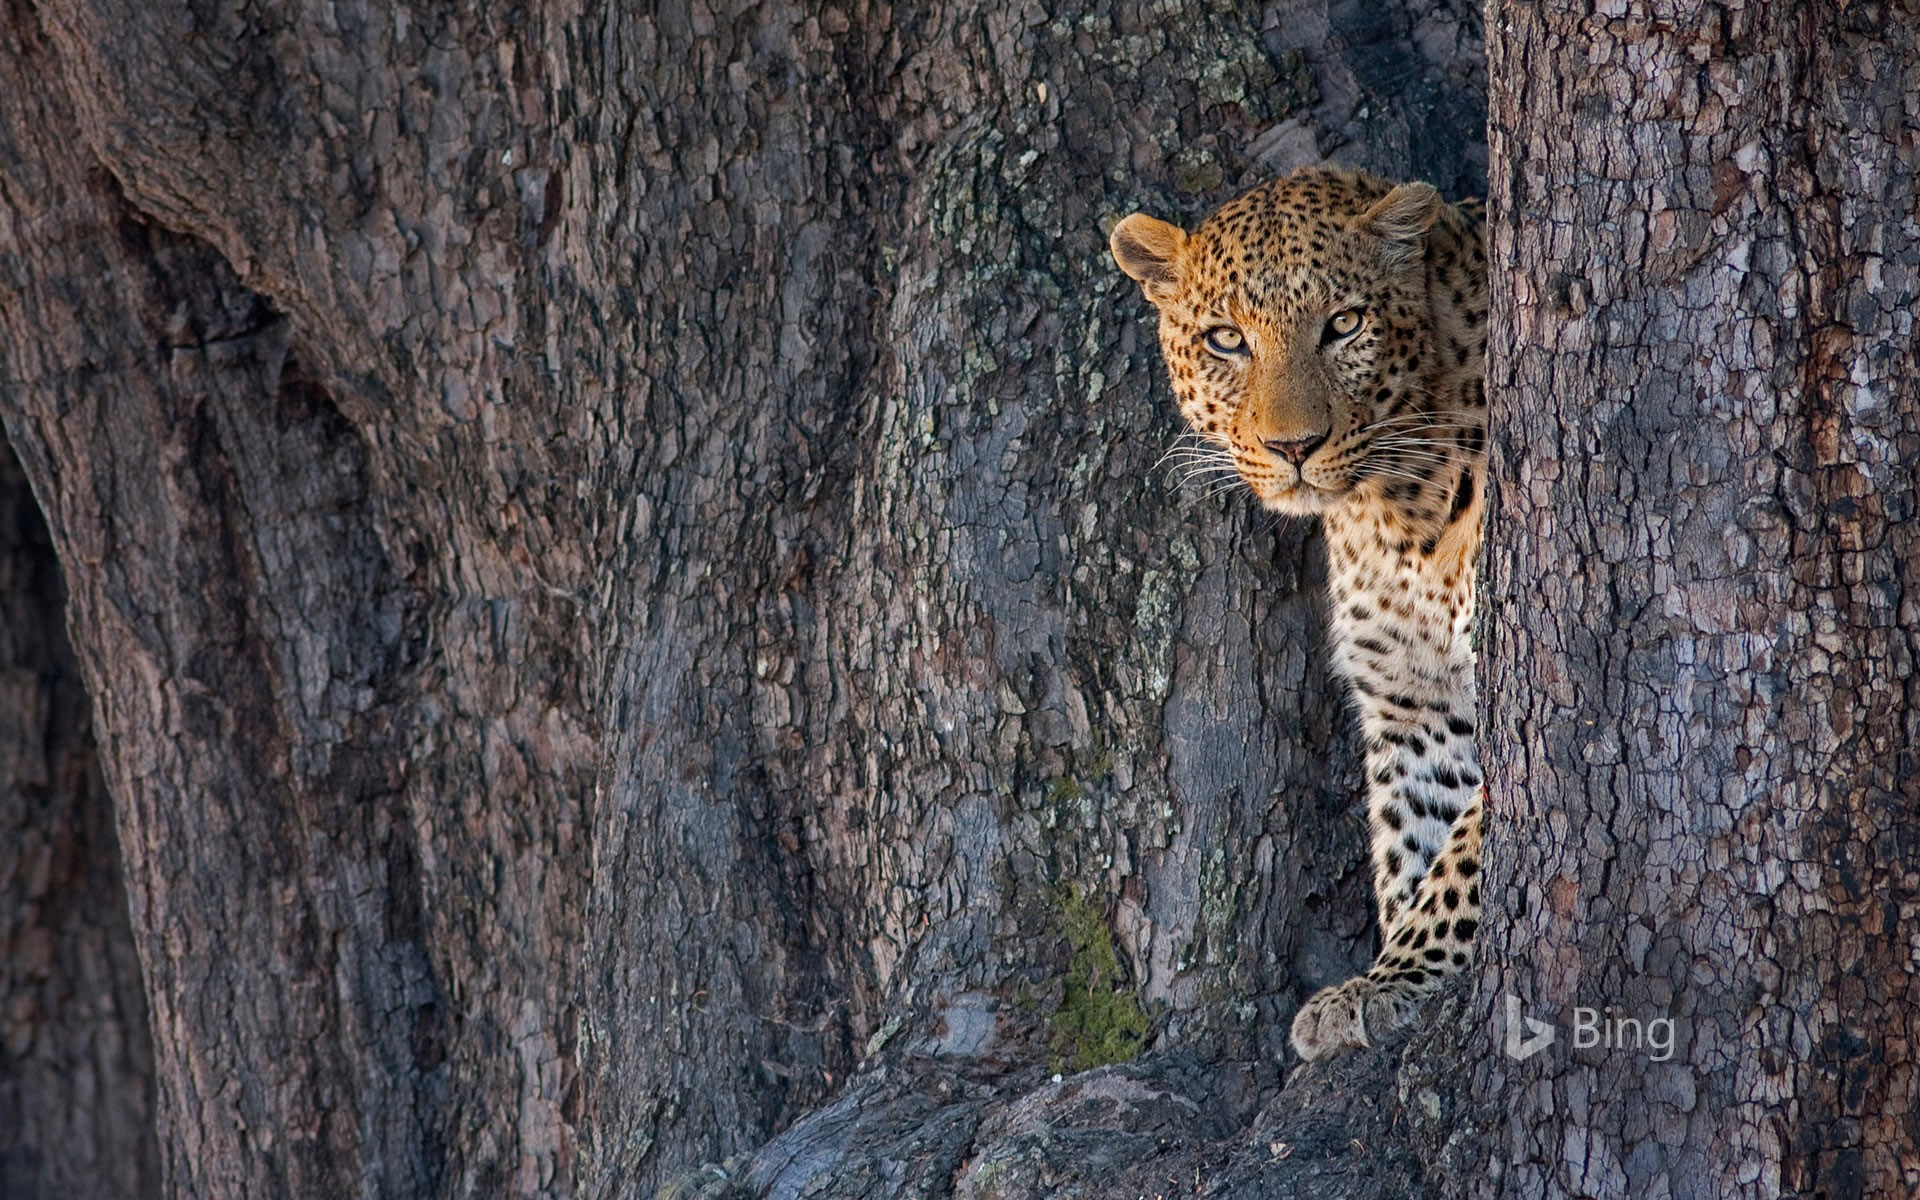 Male leopard in Linyanti Wildlife Reserve, Botswana